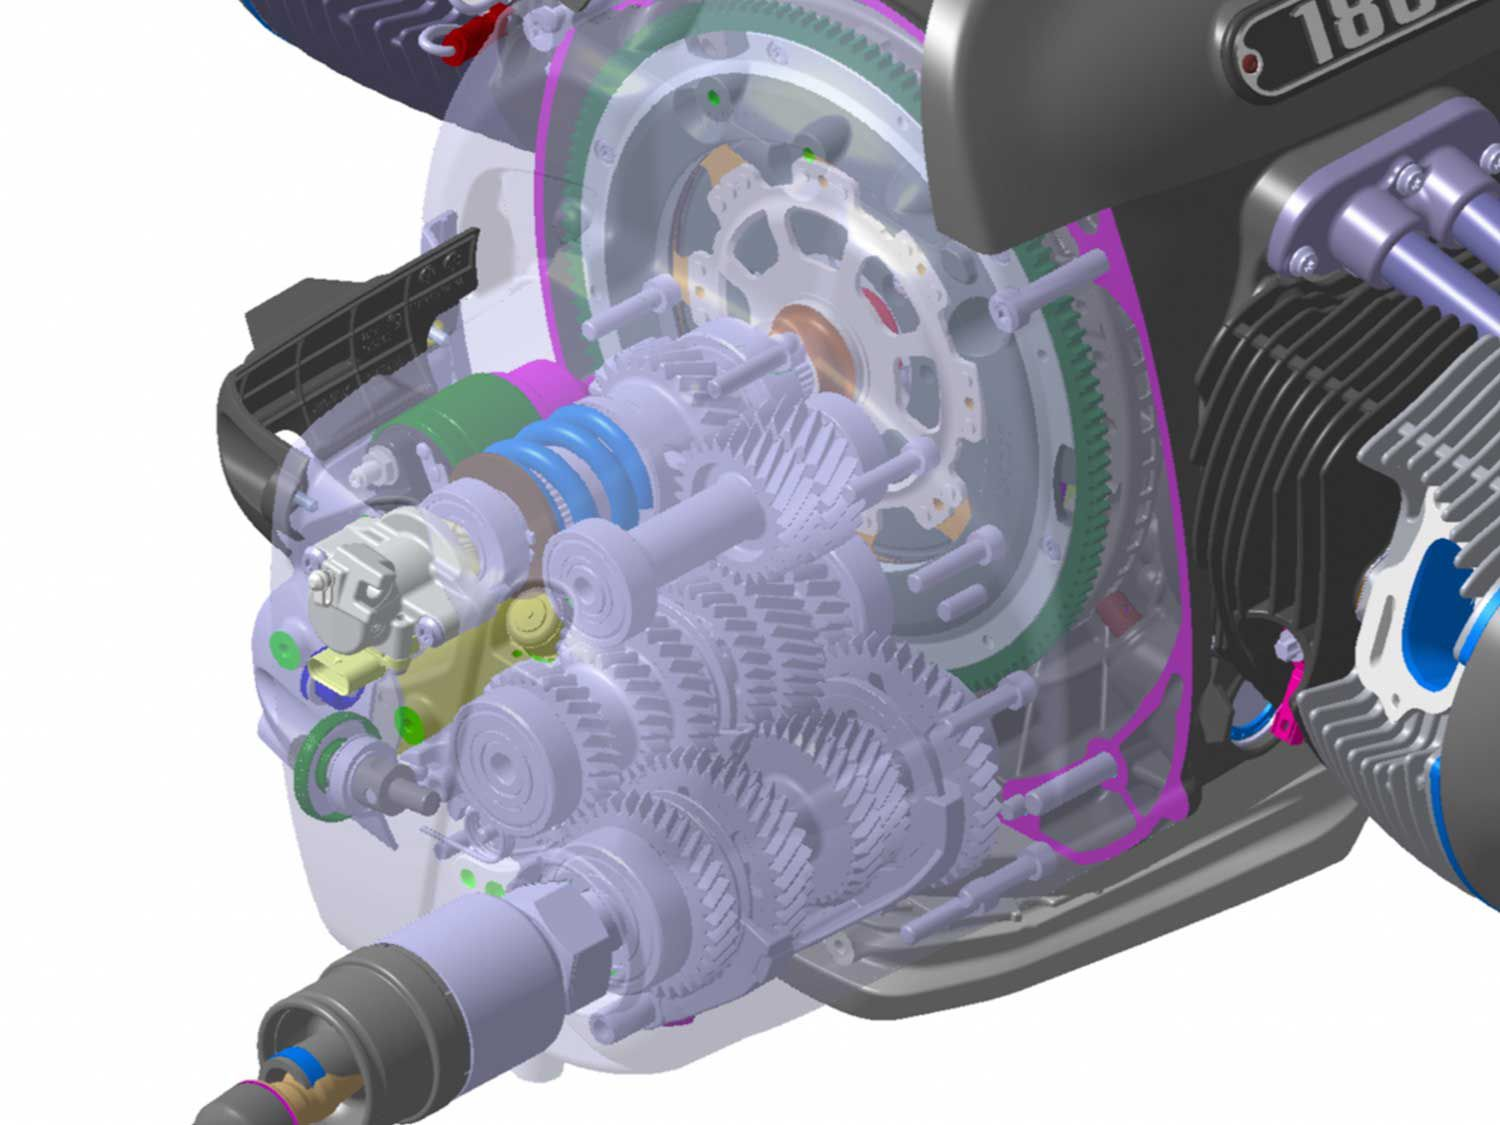 The six-speed transmission is housed in a separate aluminum housing at the rear of the main engine housing.